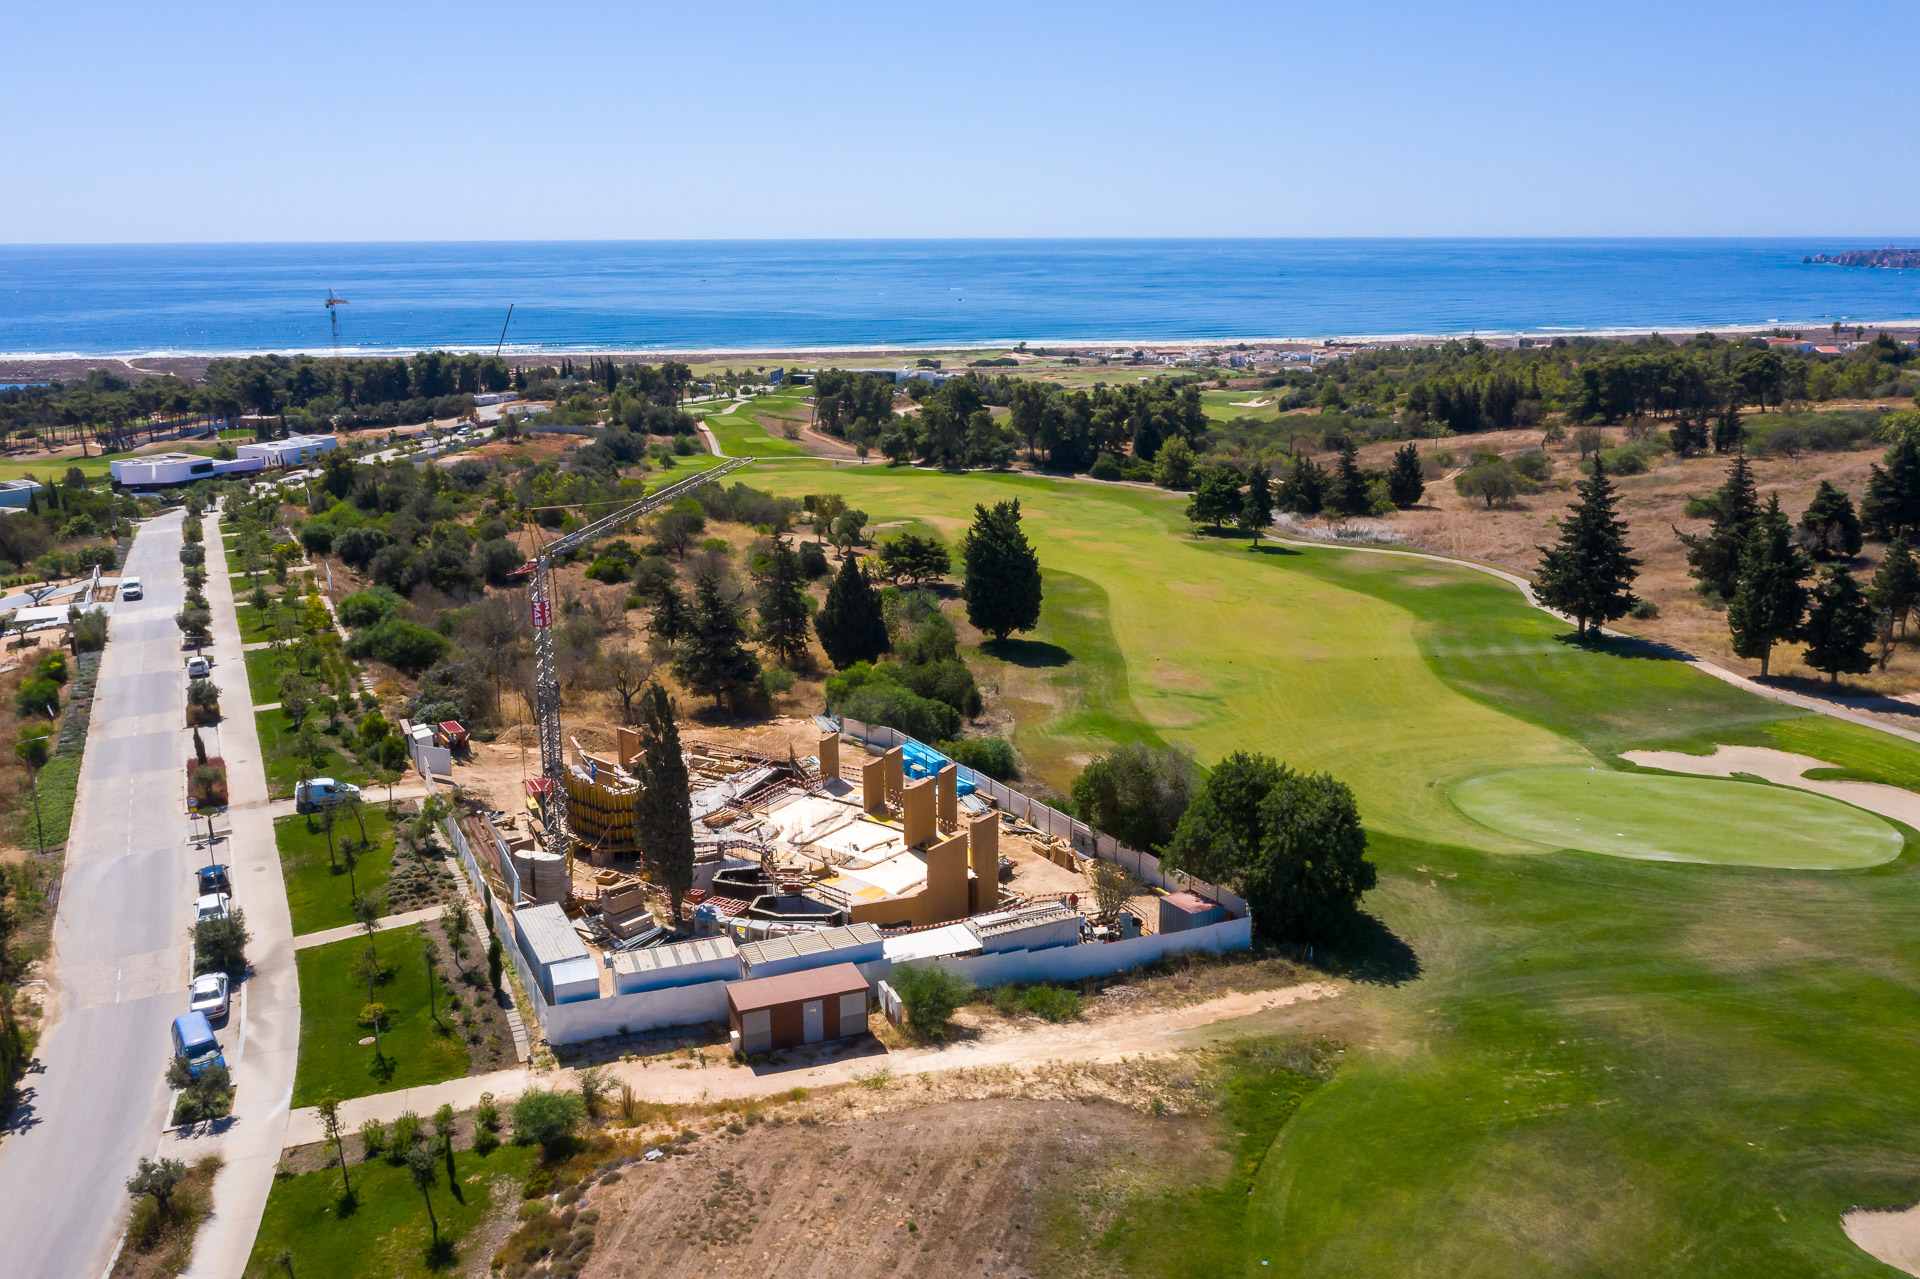 Palmares resort villa 19